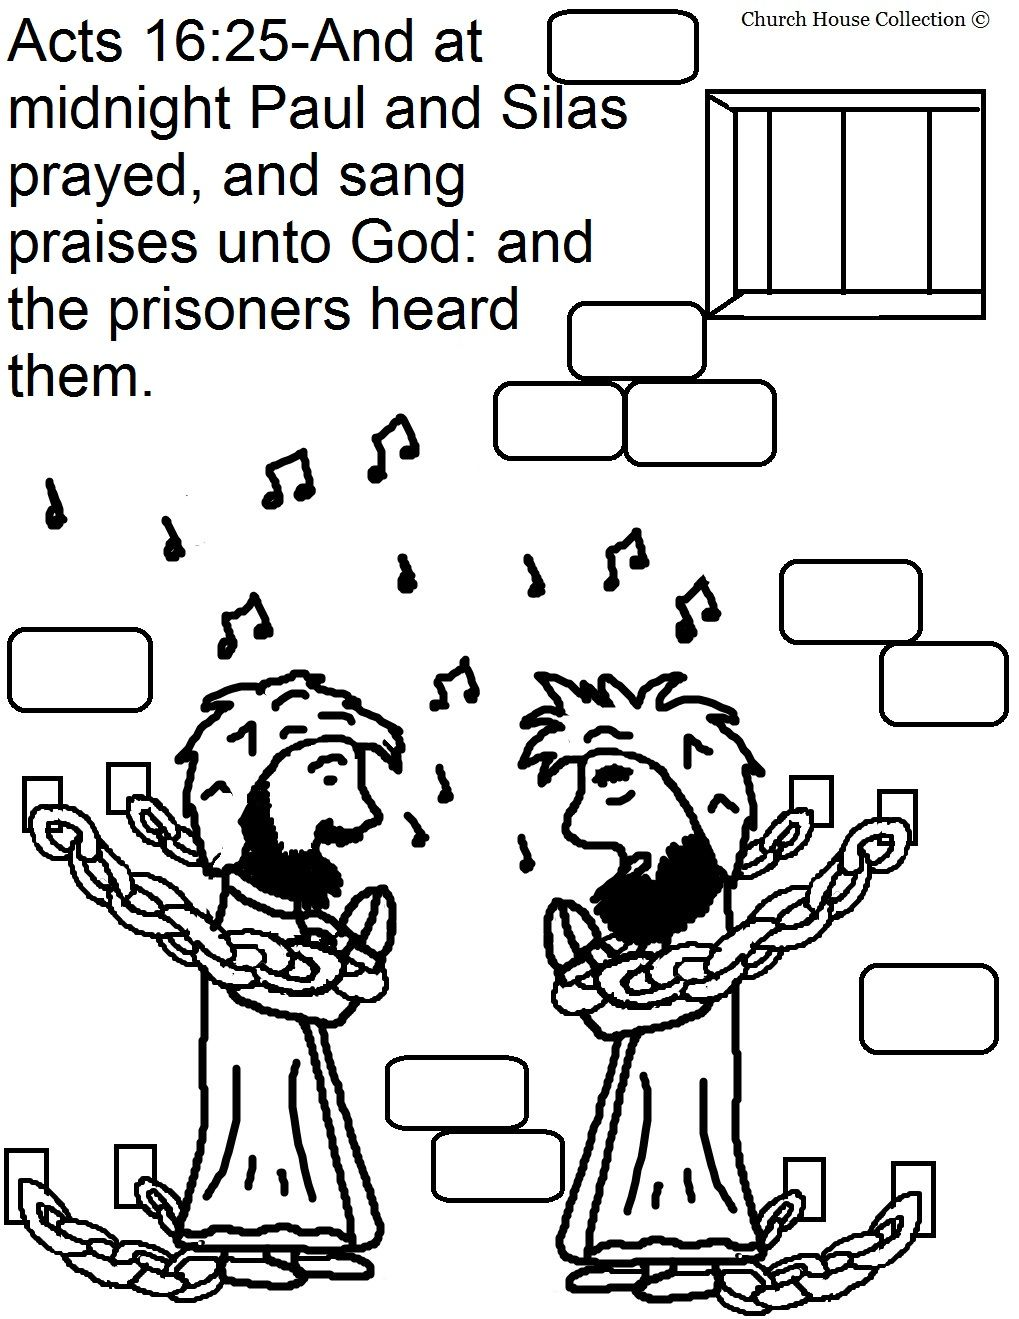 Church House Collection Blog: Paul and Silas In Jail Coloring Pages ...